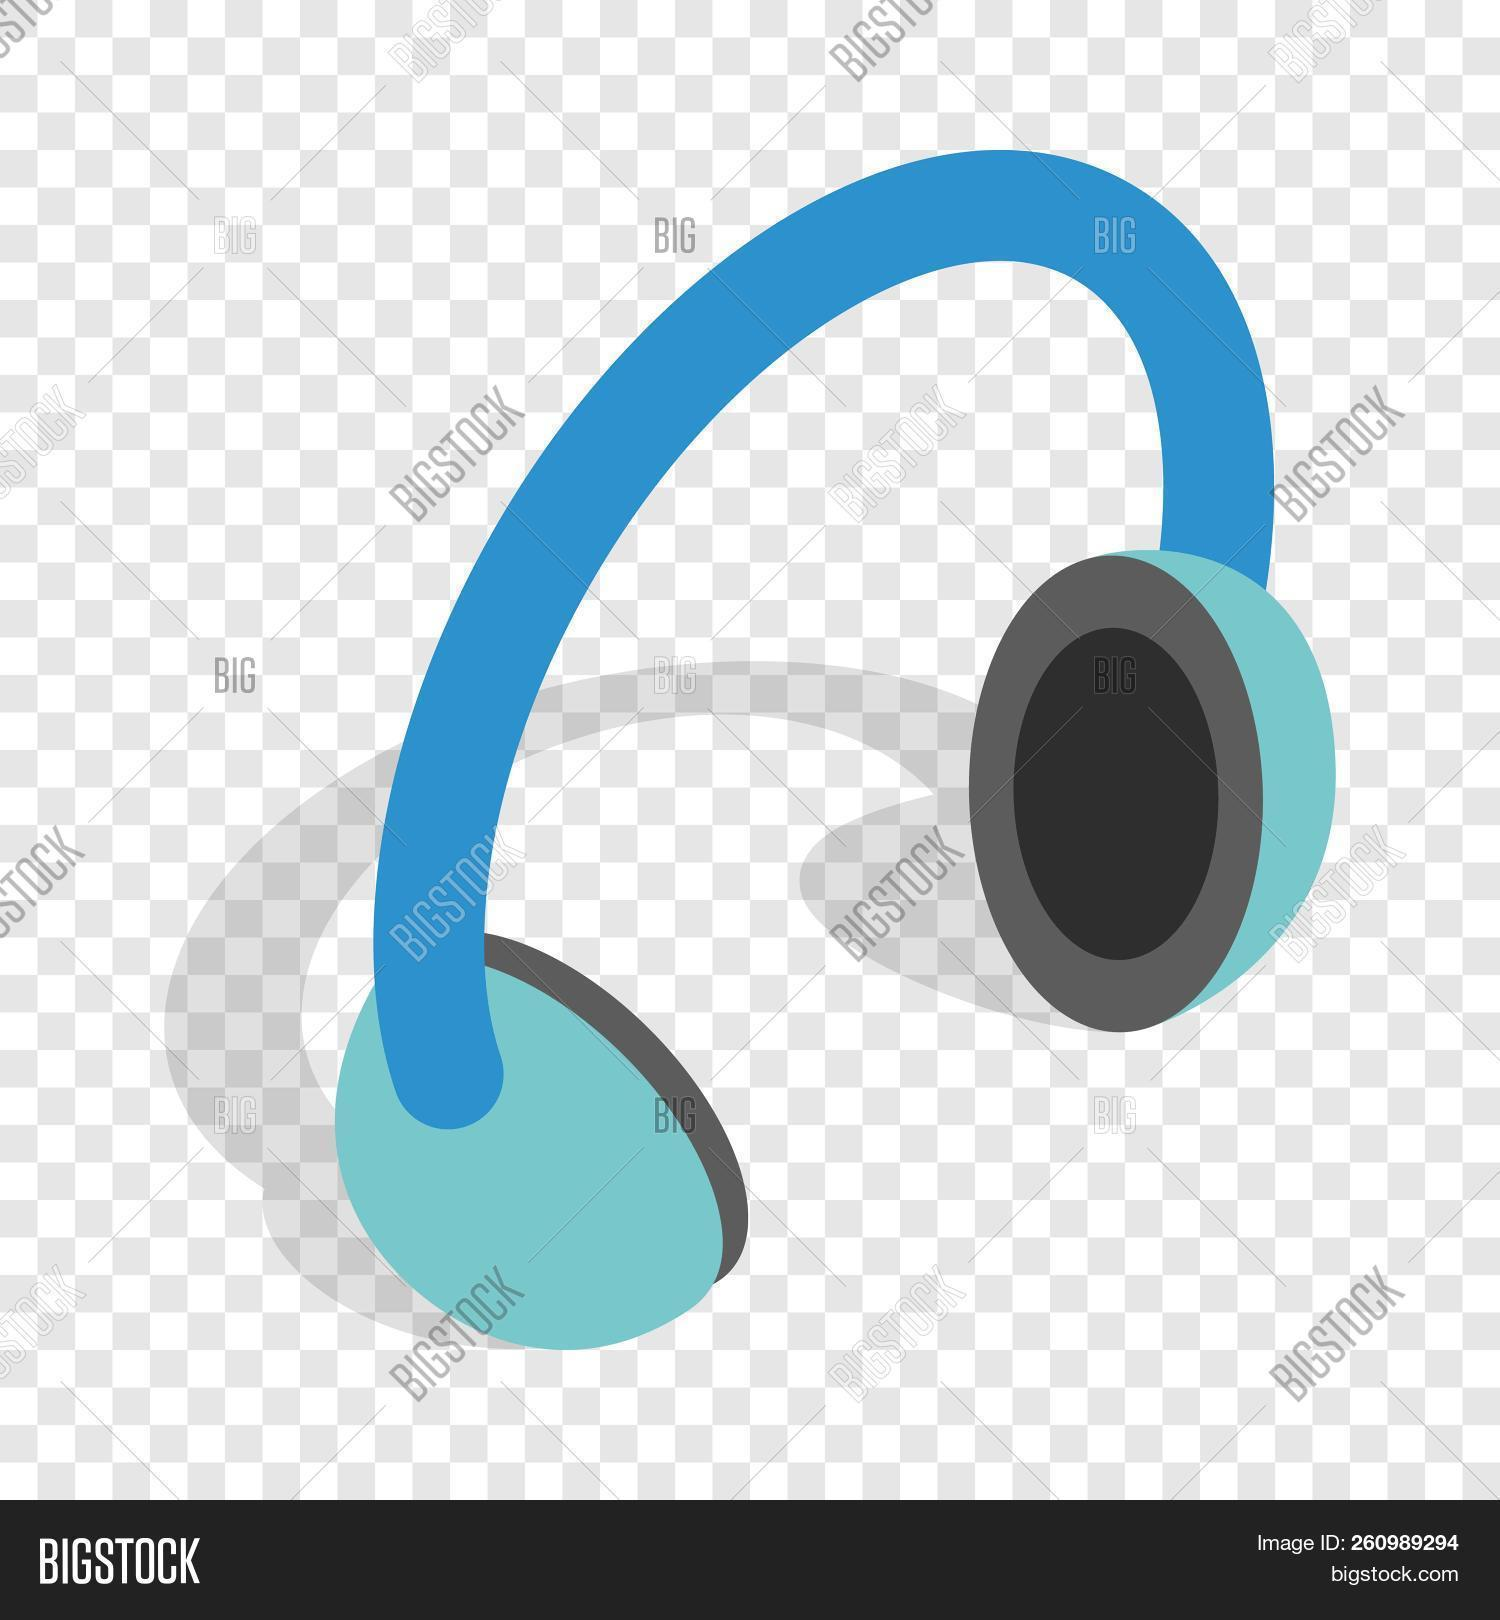 3d,accessory,audio,bass,blue,call,center,device,digital,disco,dj,ear,earphone,electrical,electronics,element,entertainment,equipment,funky,gadget,head,headphone,headset,hear,icon,isolated,isometric,leisure,listen,meloman,microphone,modern,music,musical,object,personal,pop,portable,professional,radio,relaxation,sign,sound,speaker,stereo,studio,symbol,technology,volume